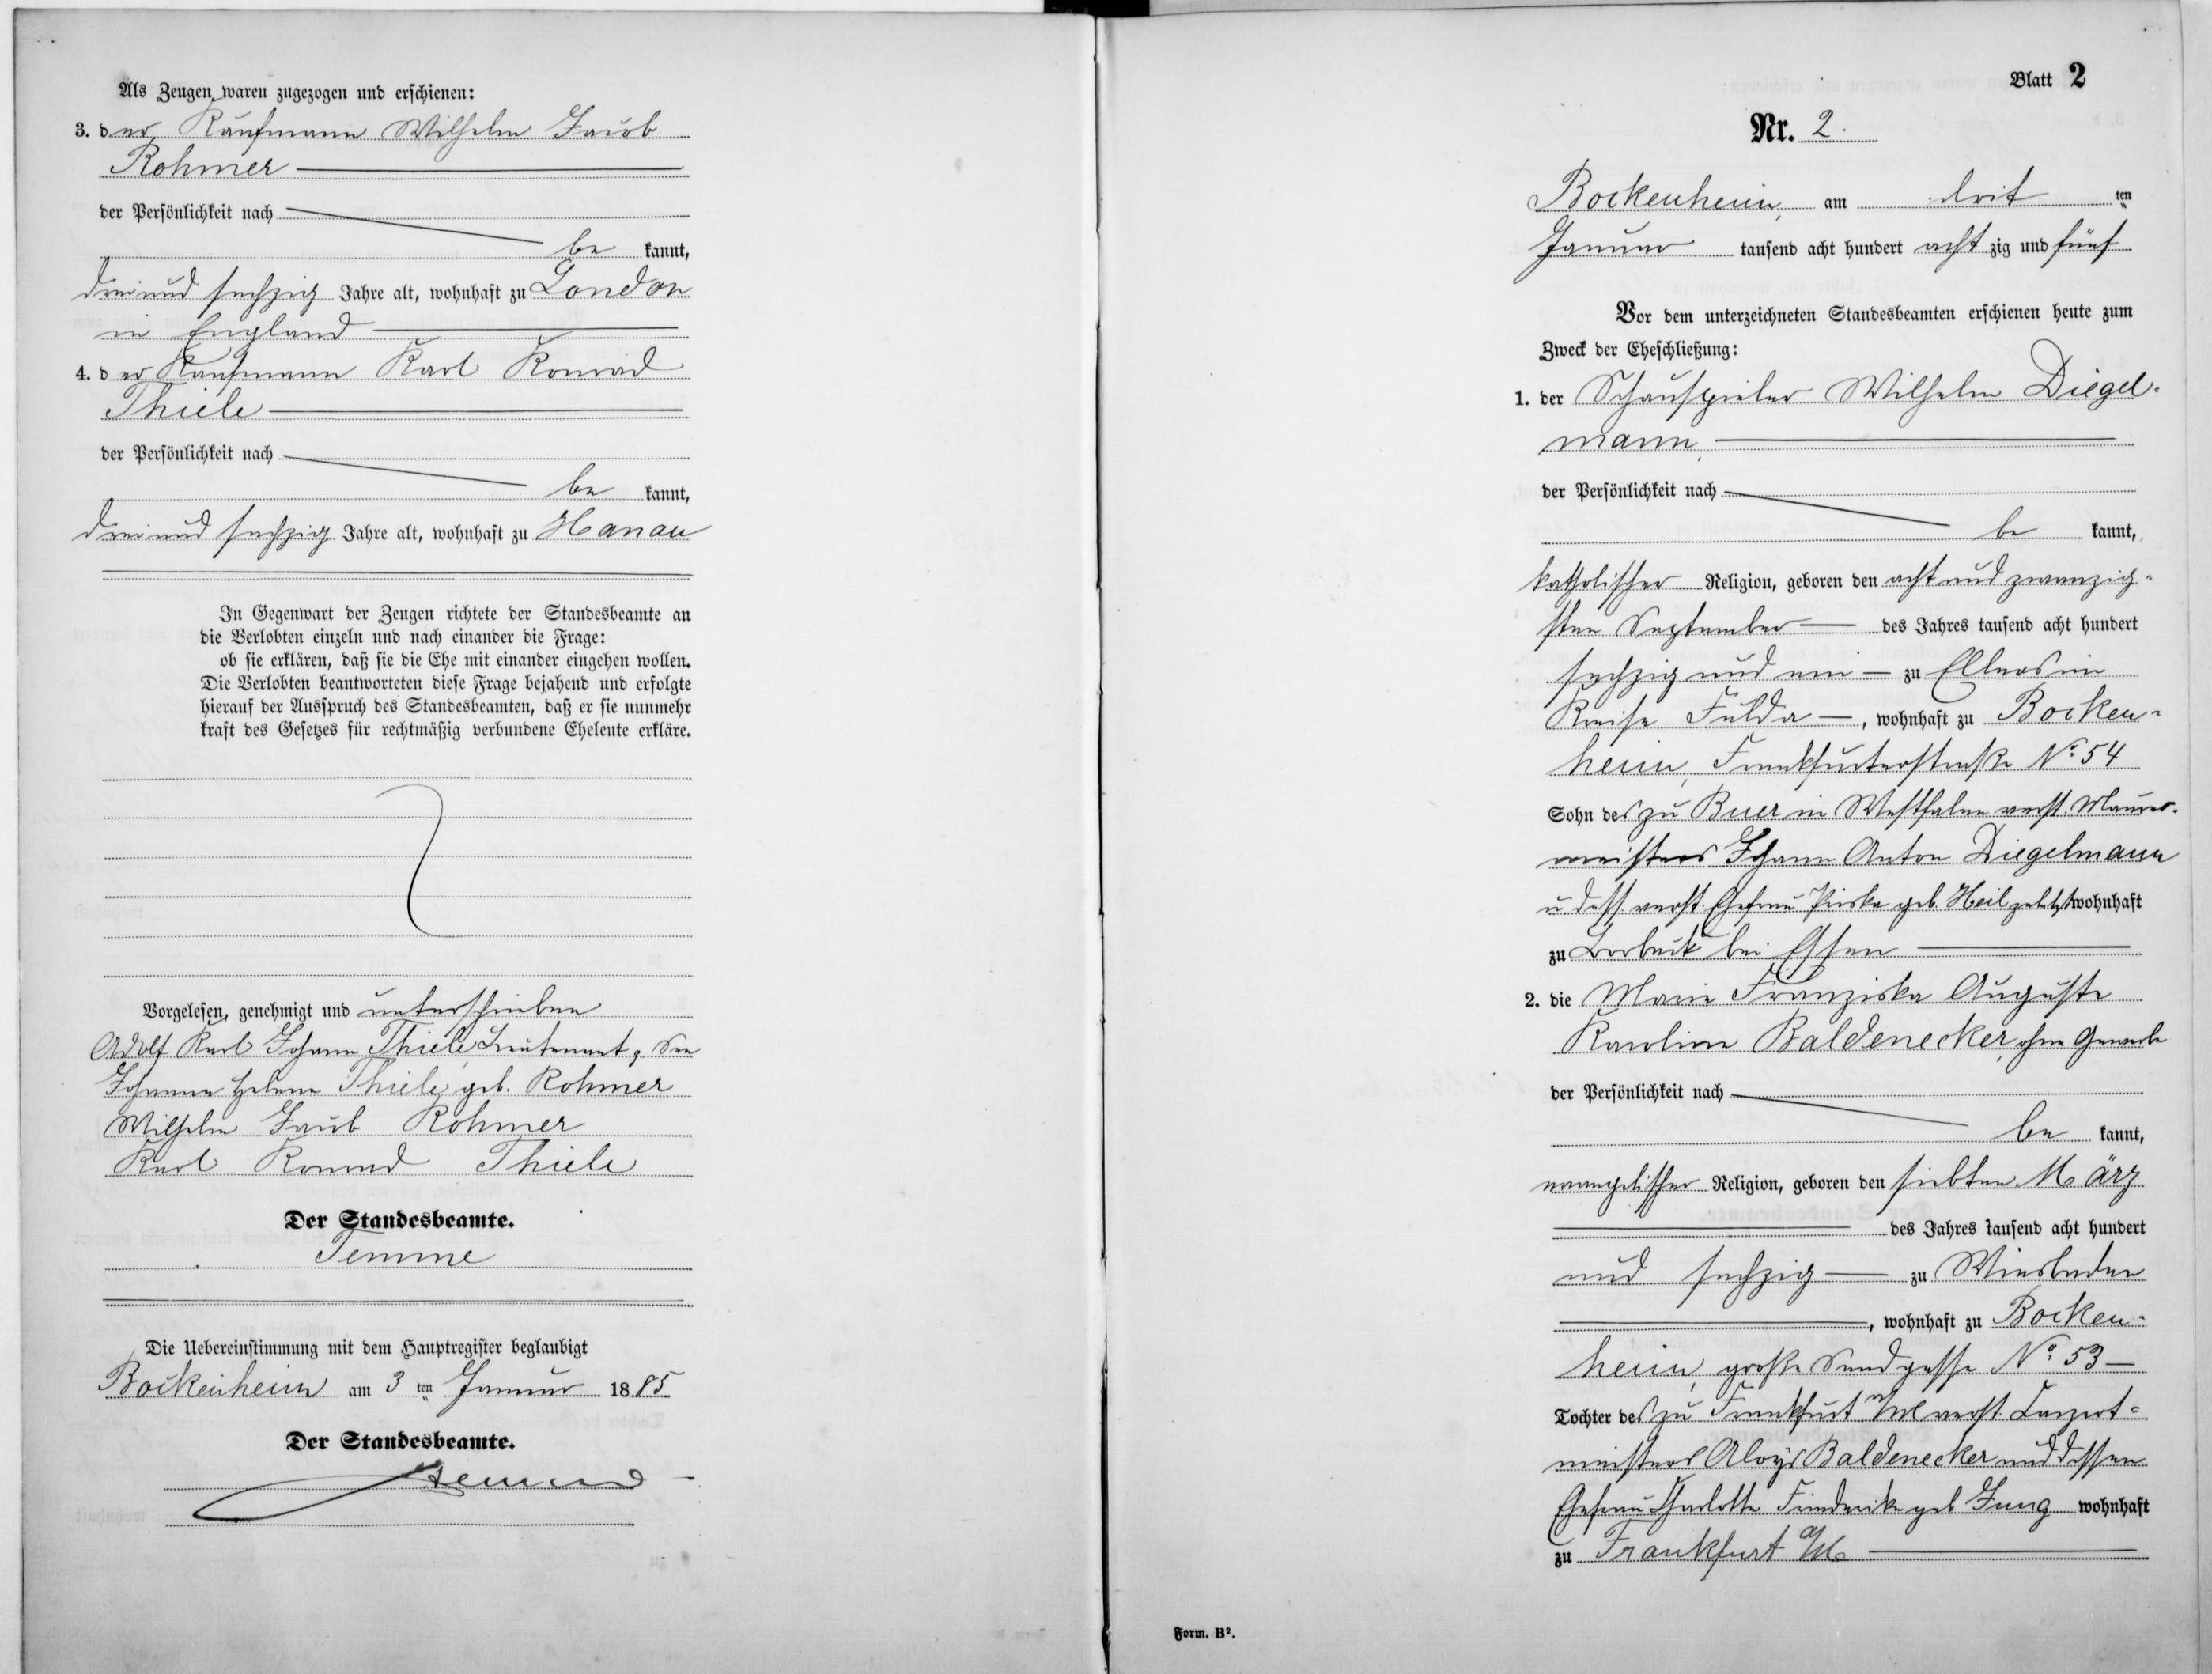 Marriage record of Wilhelm Diegelmann and Marie Franziska Auguste Karoline Baldenecker from the Germany, Hesse Marriage Index, 1849–1931